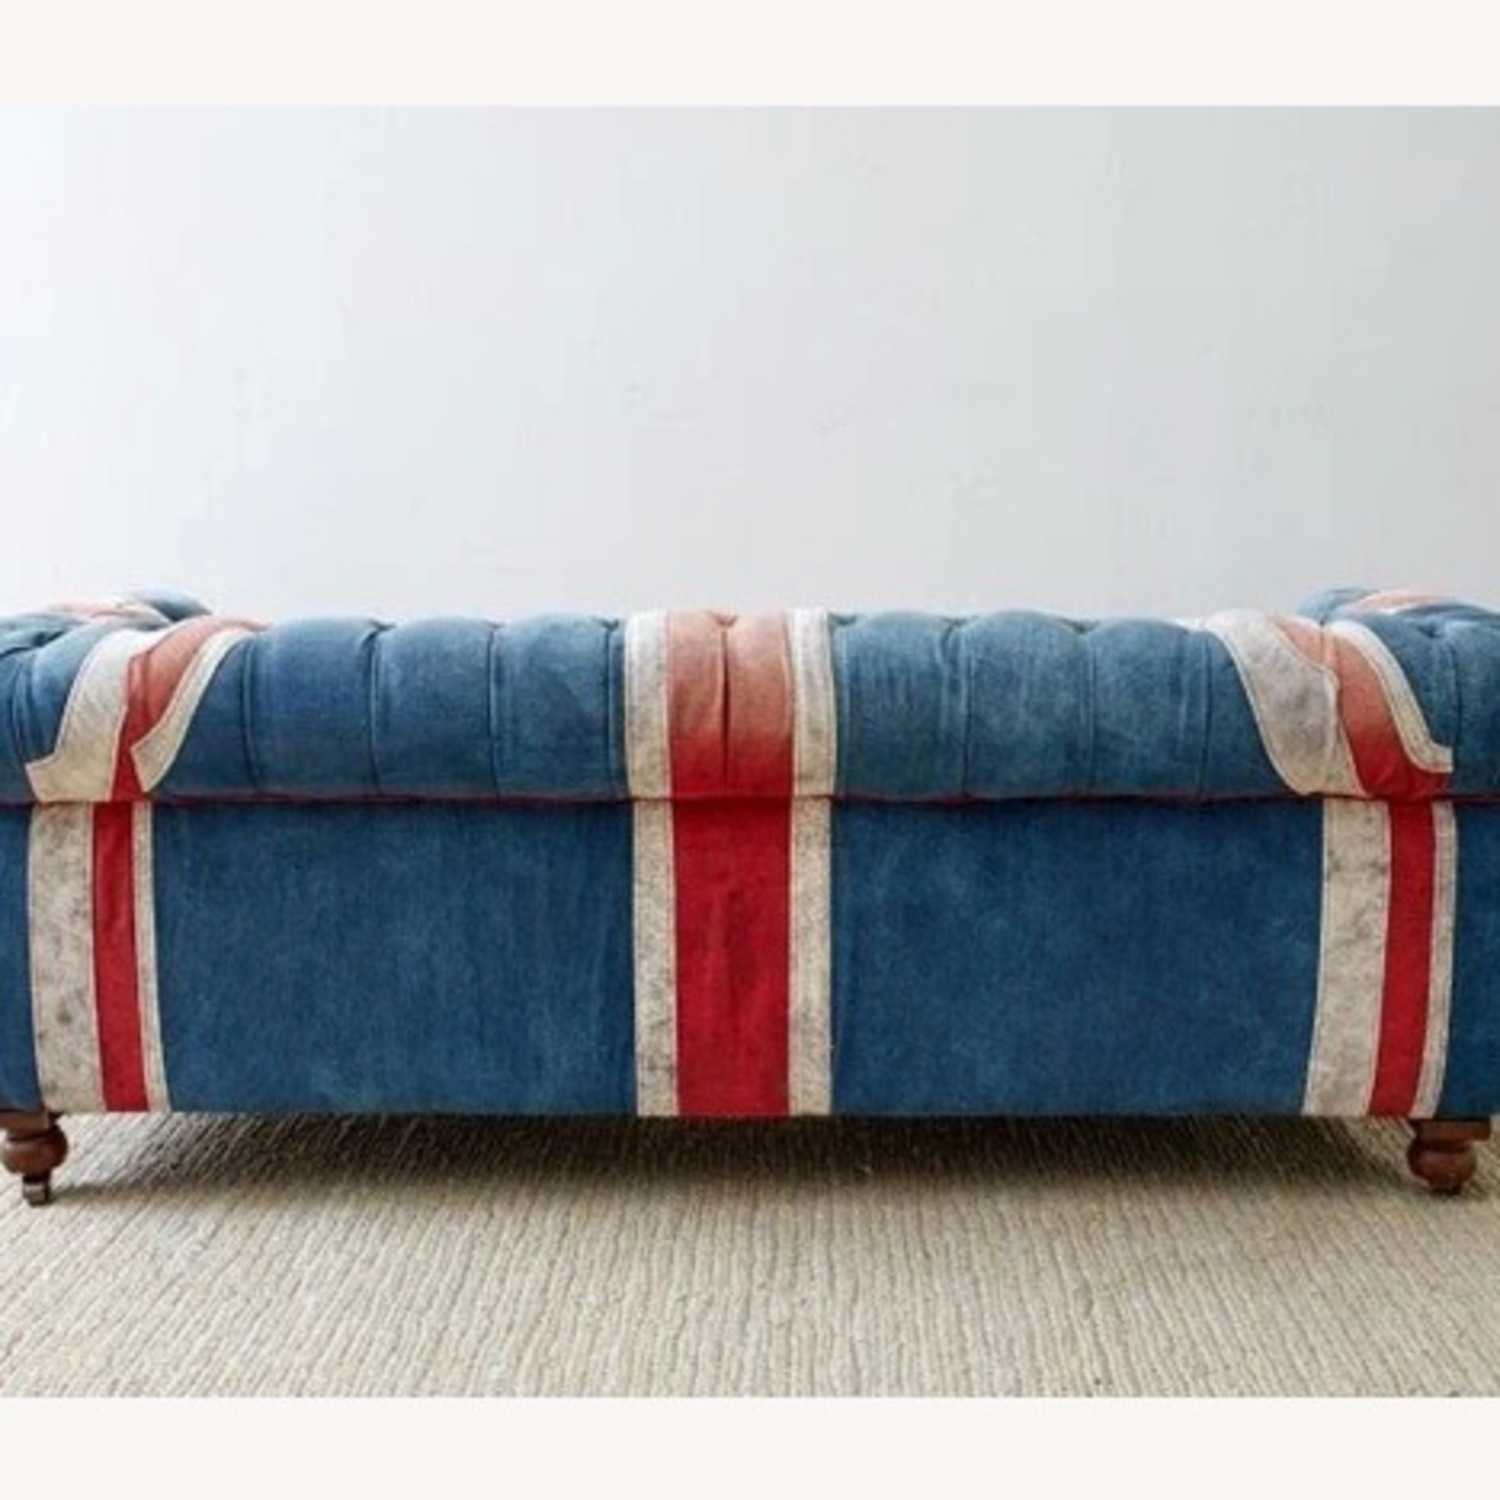 Timothy Oulton Design Union Jack Chesterfield Sofa - image-10